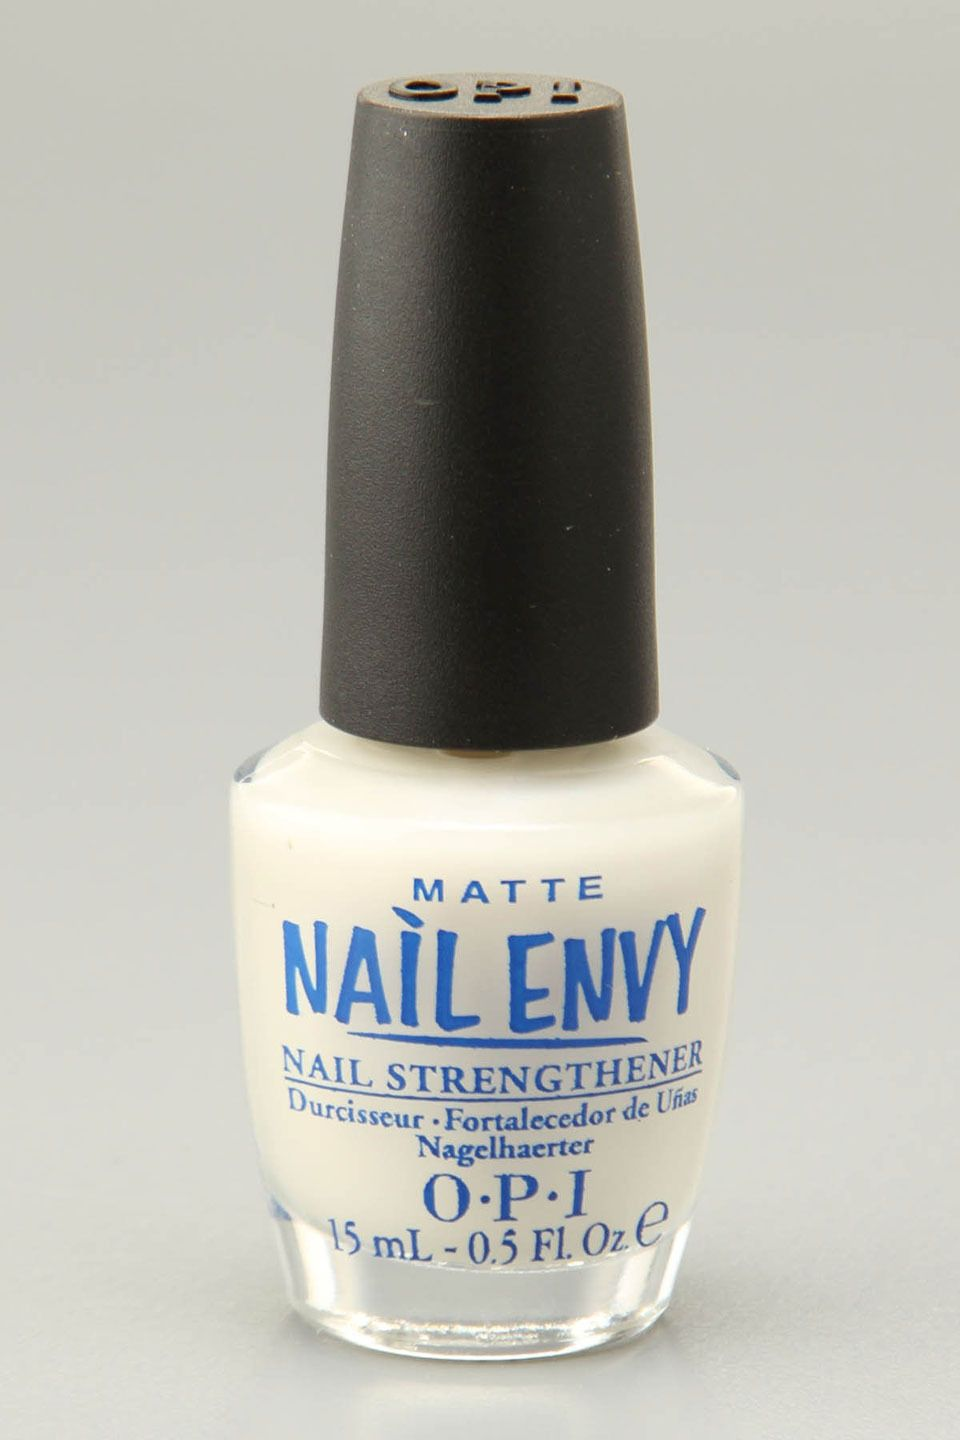 OPI Matte Nail Envy (if you like the matte look, you can paint this ...